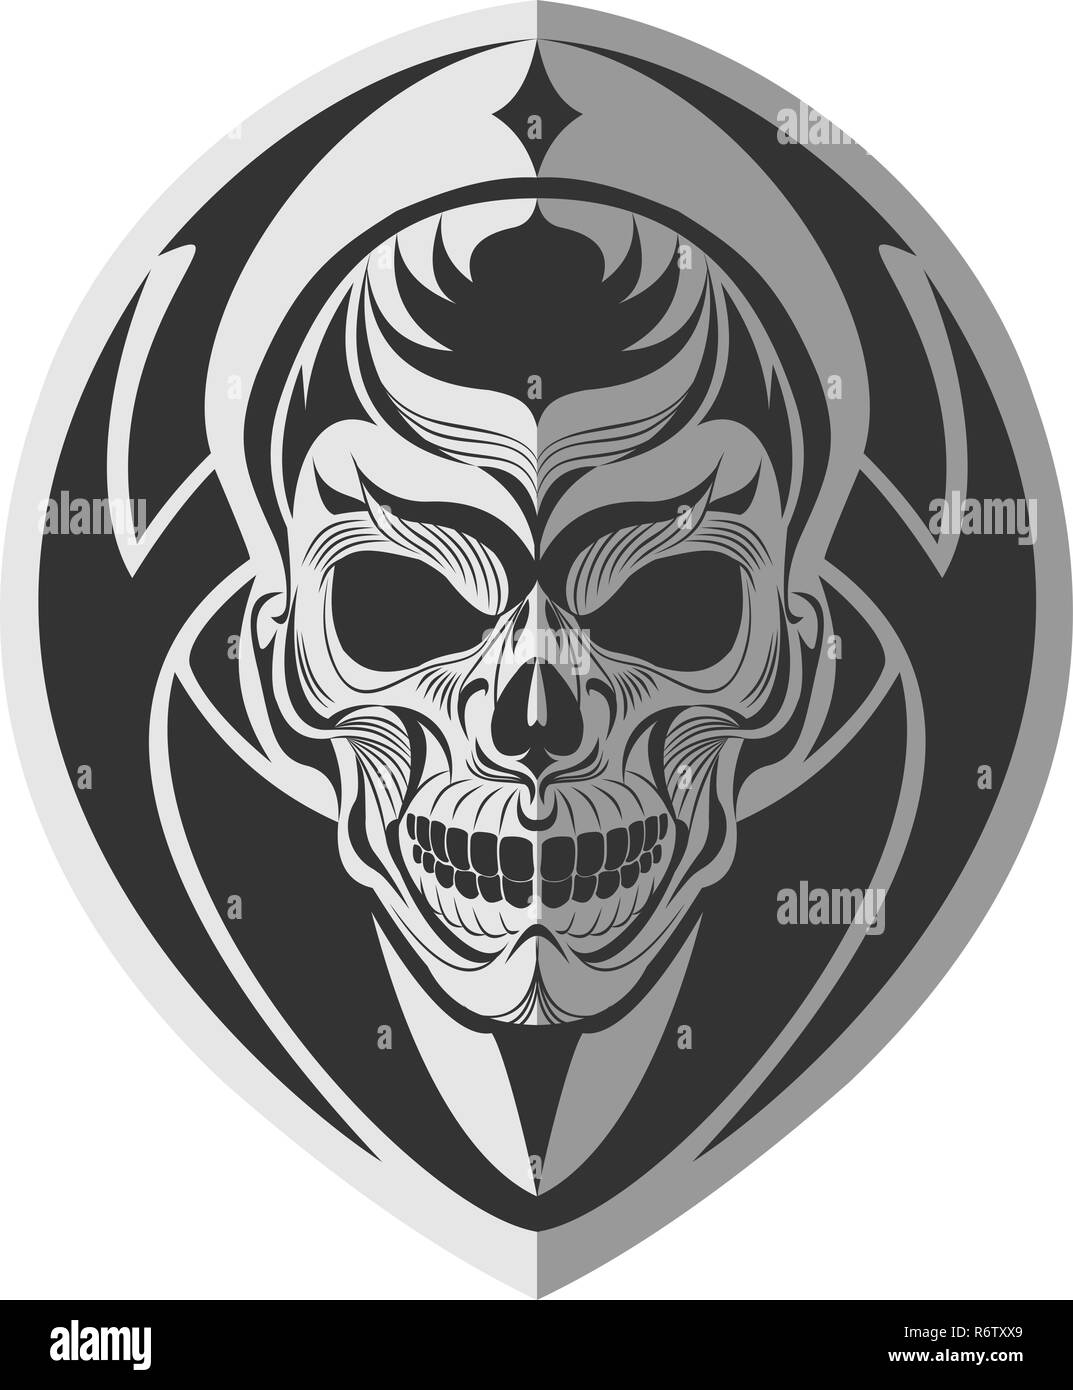 5410c9df3 Decorative black and white tribal skull flat paper memorable art for  sticker, tattoo or t-shirt printing